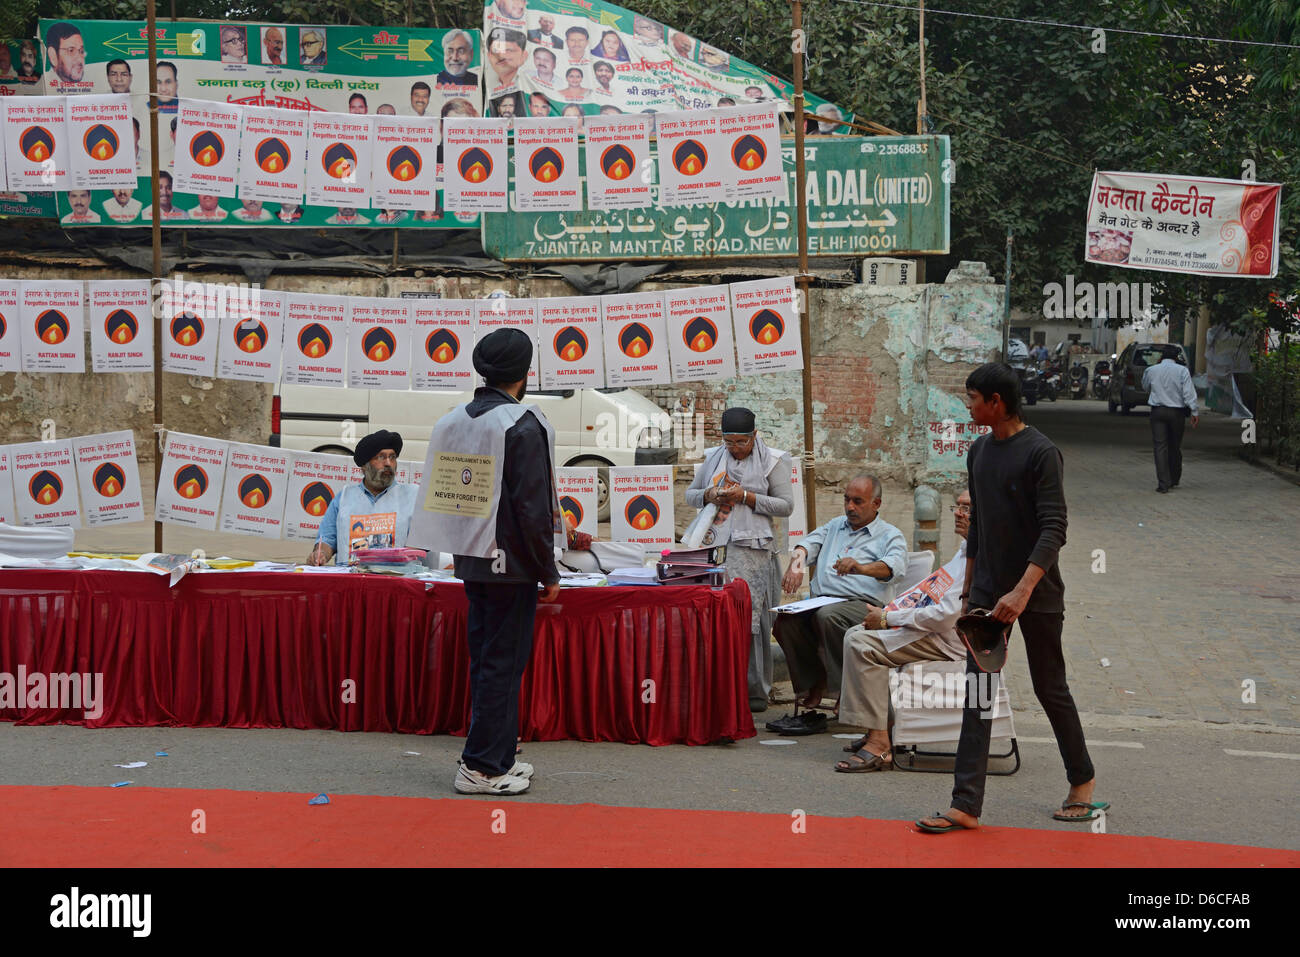 A Sikh political rally in Tolstoy Road near Conaught Place in New Delhi, India. - Stock Image